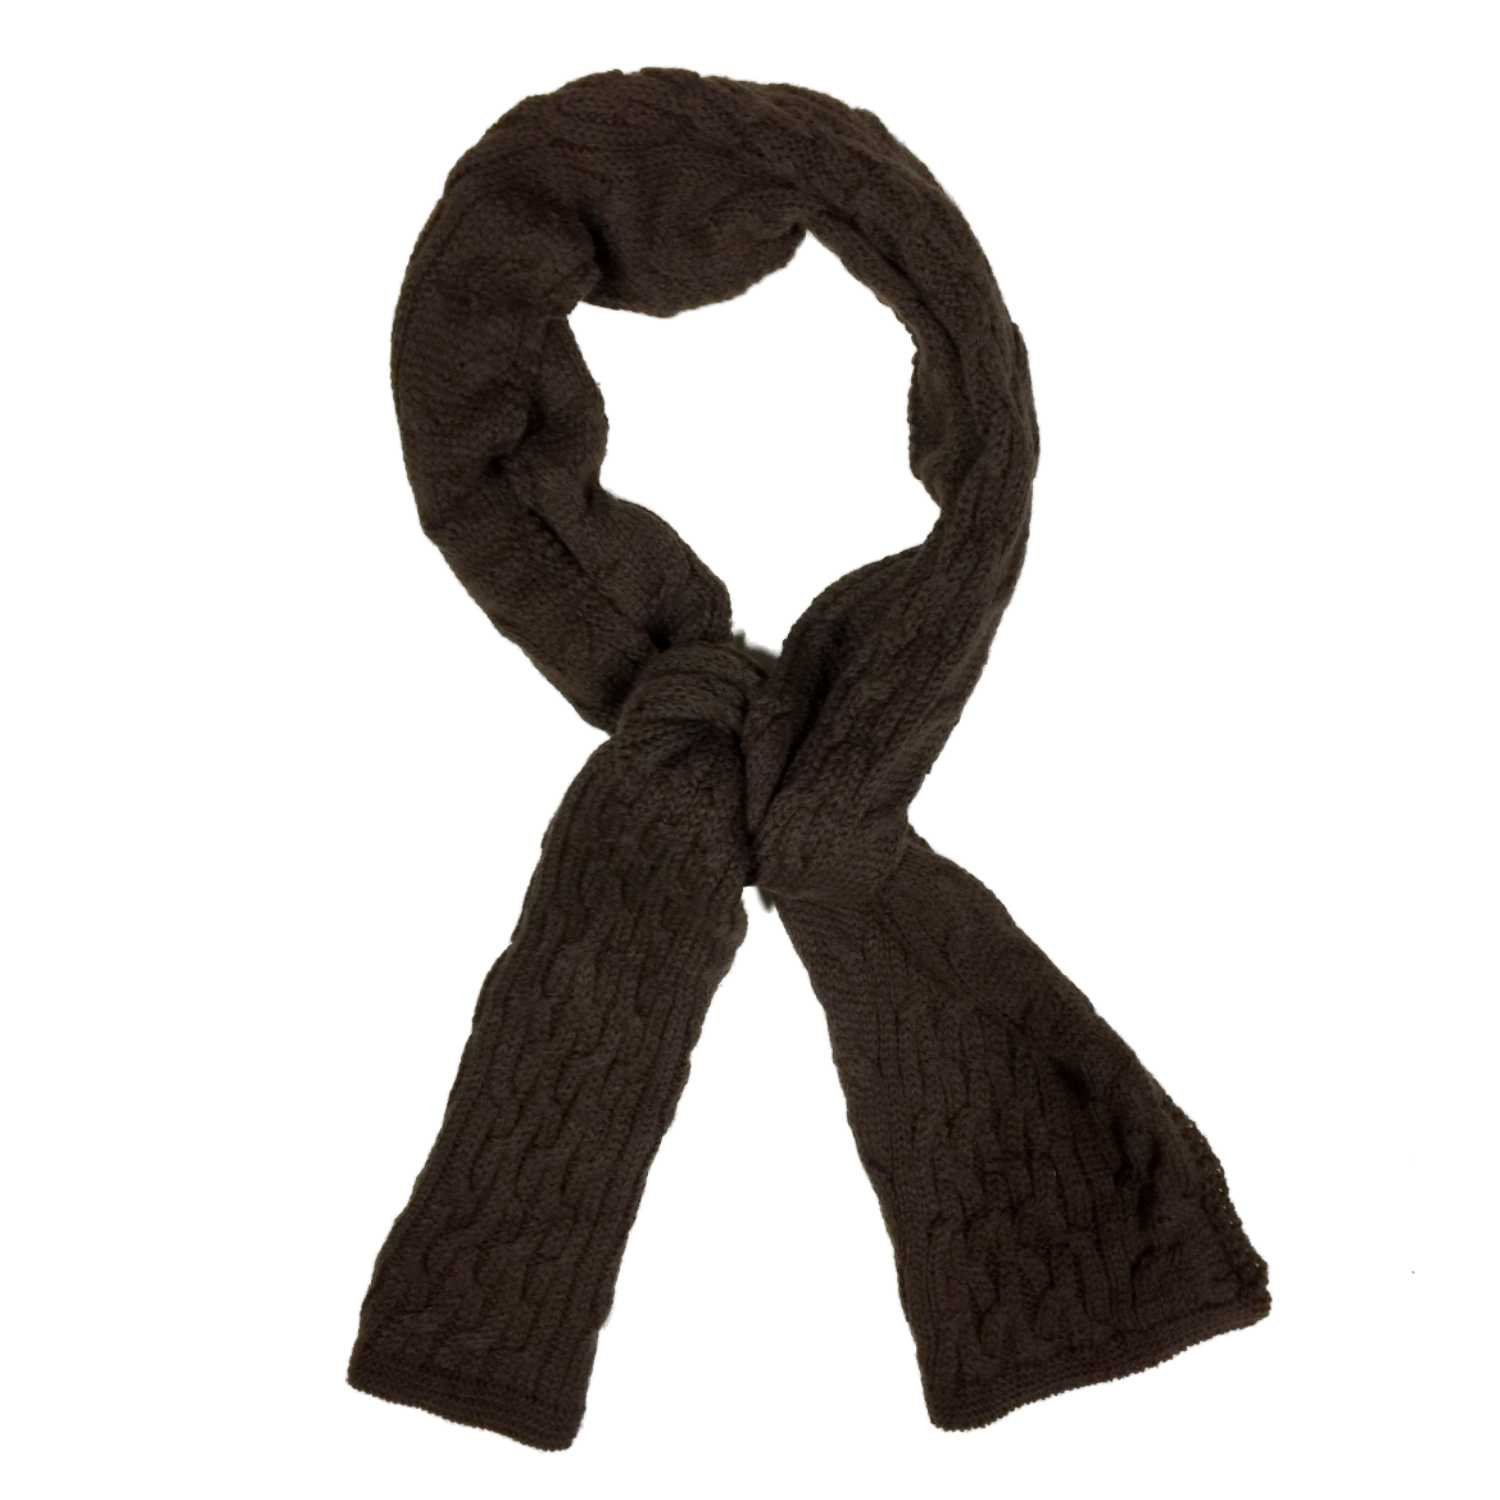 4a233276a5999 Fownes Womens Chocolate Brown Cable Knit Winter Neck Scarf at Amazon  Women's Clothing store: